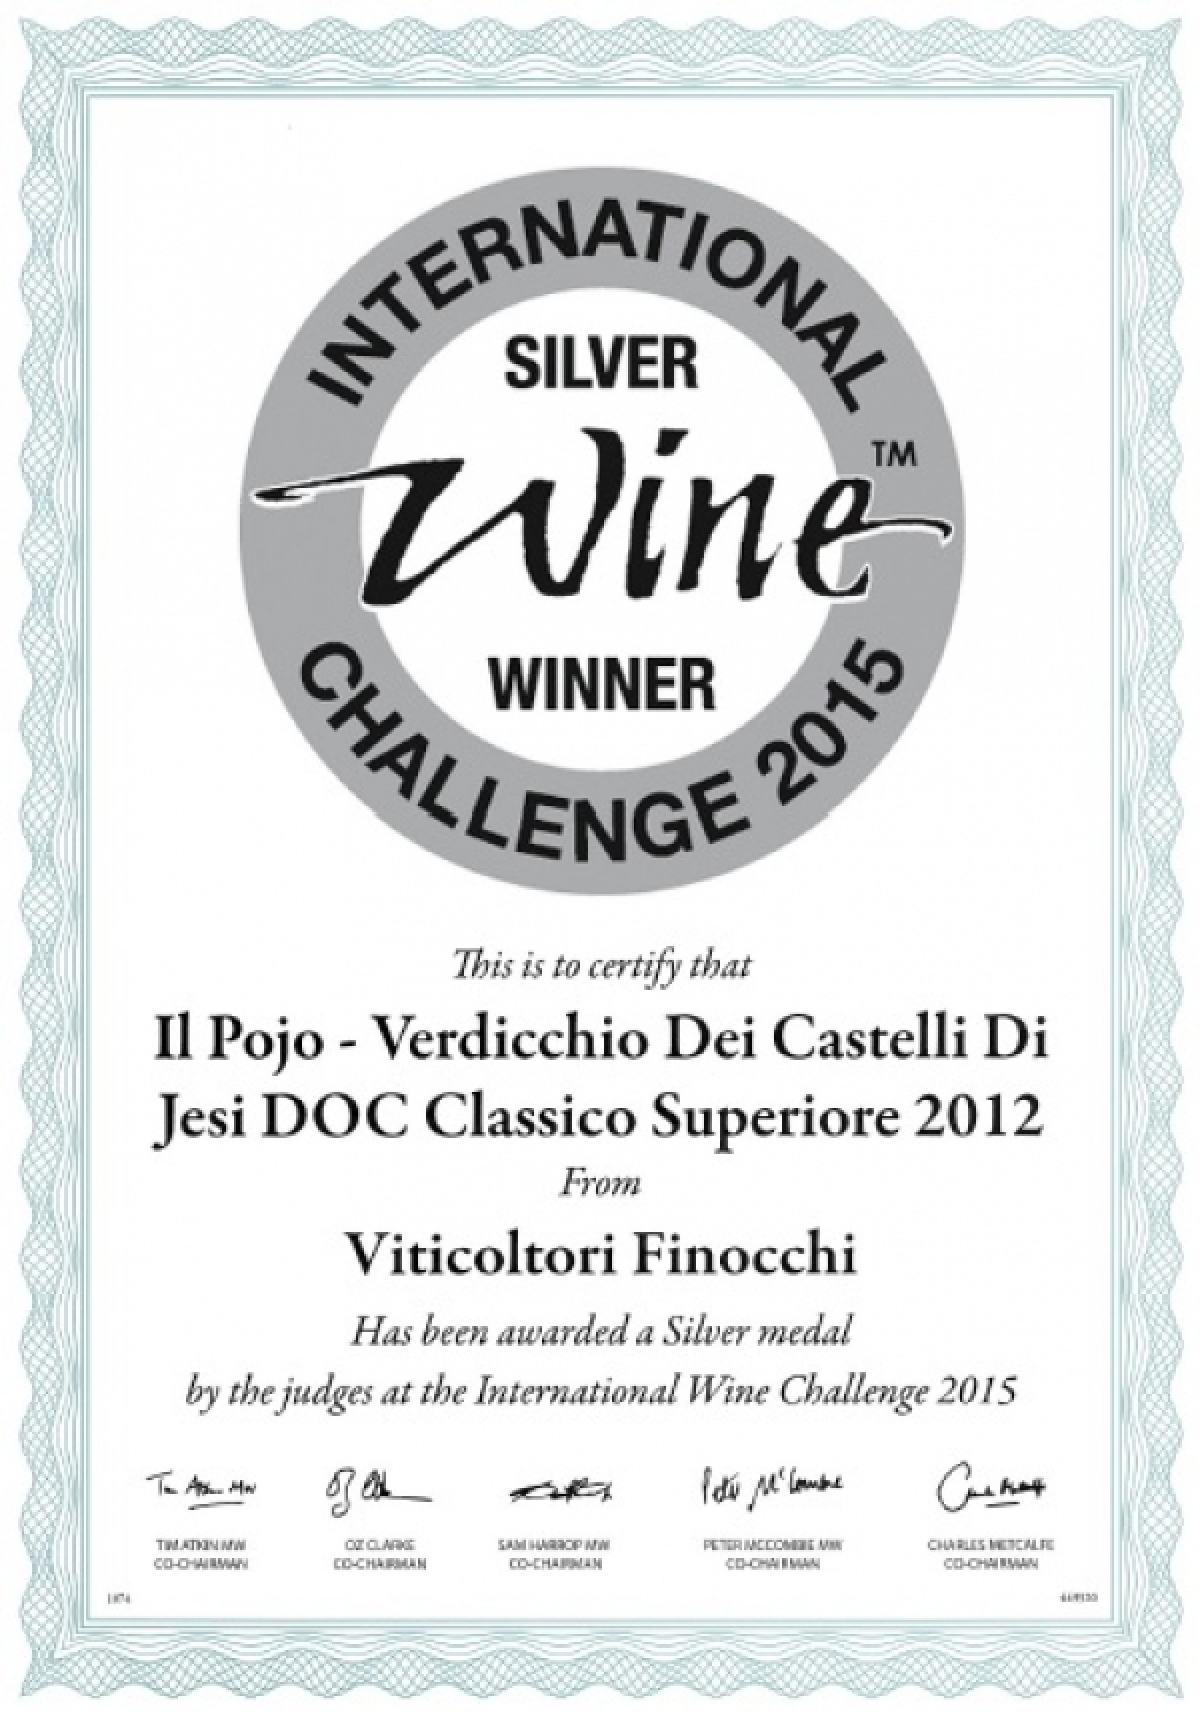 Medaglia d'Argento all'International Wine Challenge 2015